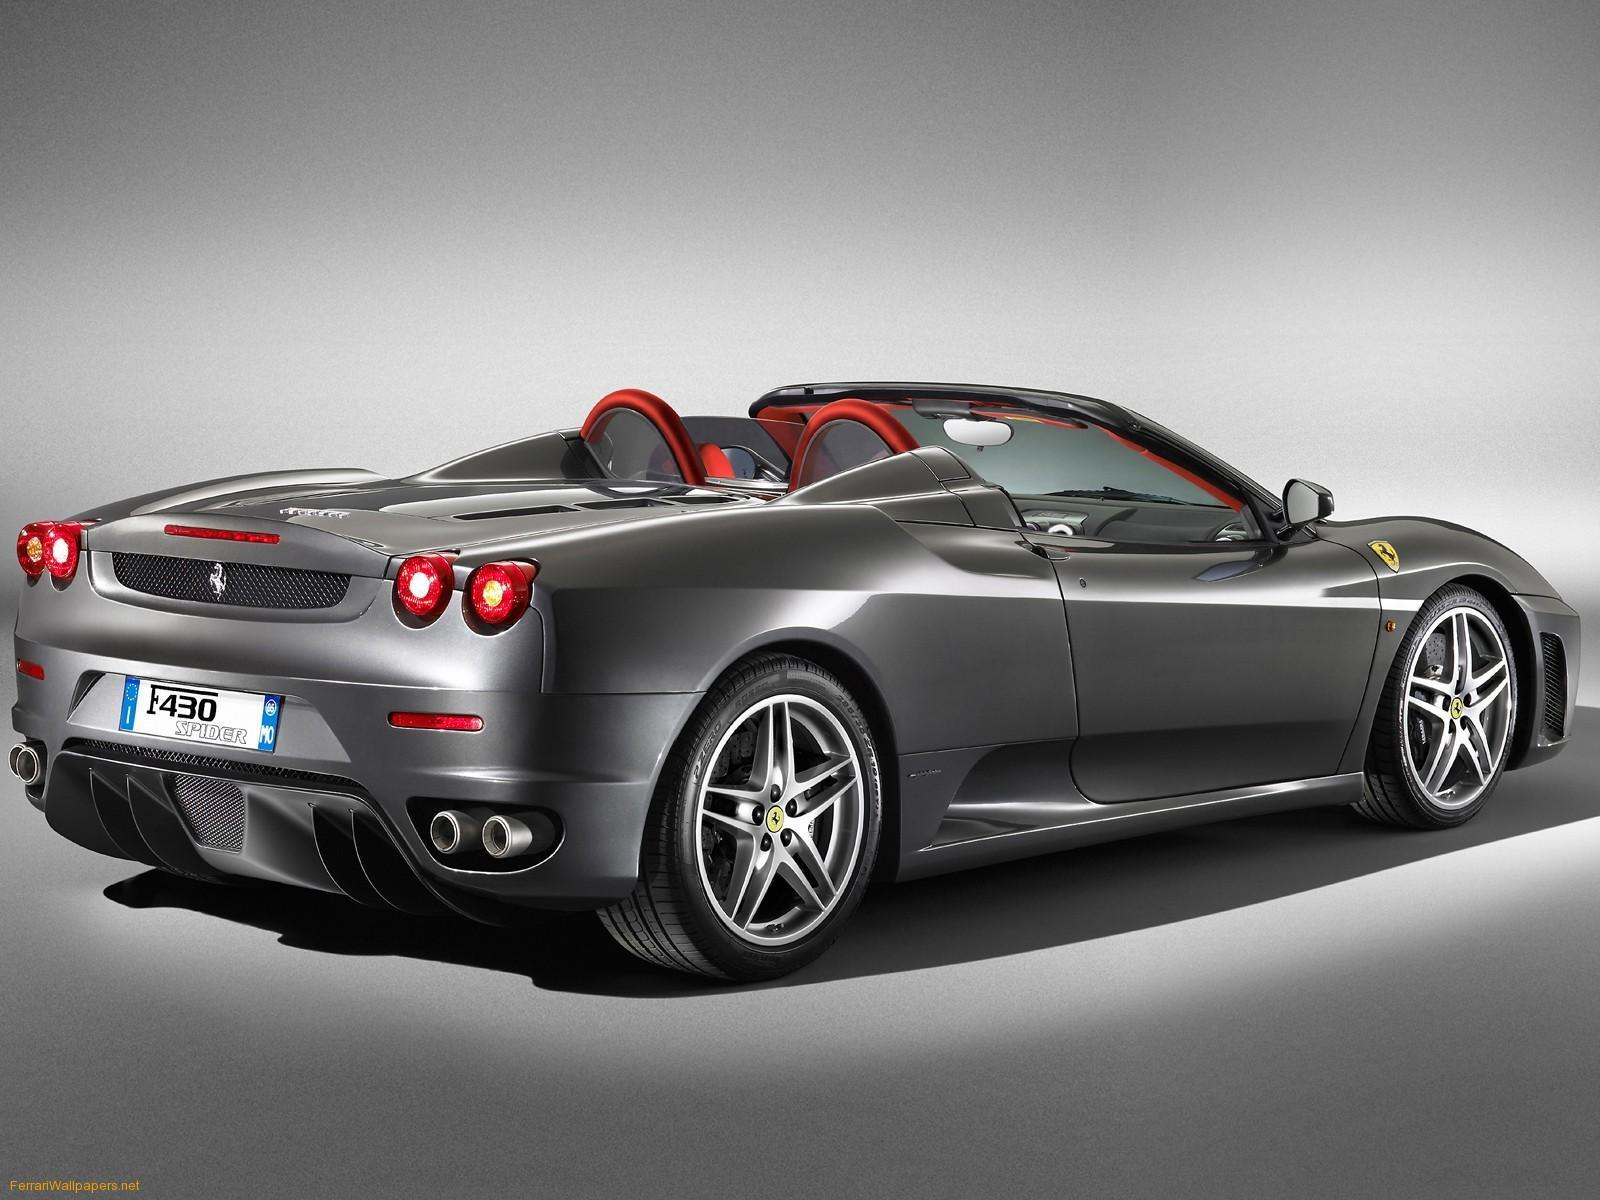 Ferrari F430 Spider Wallpapers 6612 Hd Wallpapers in Cars